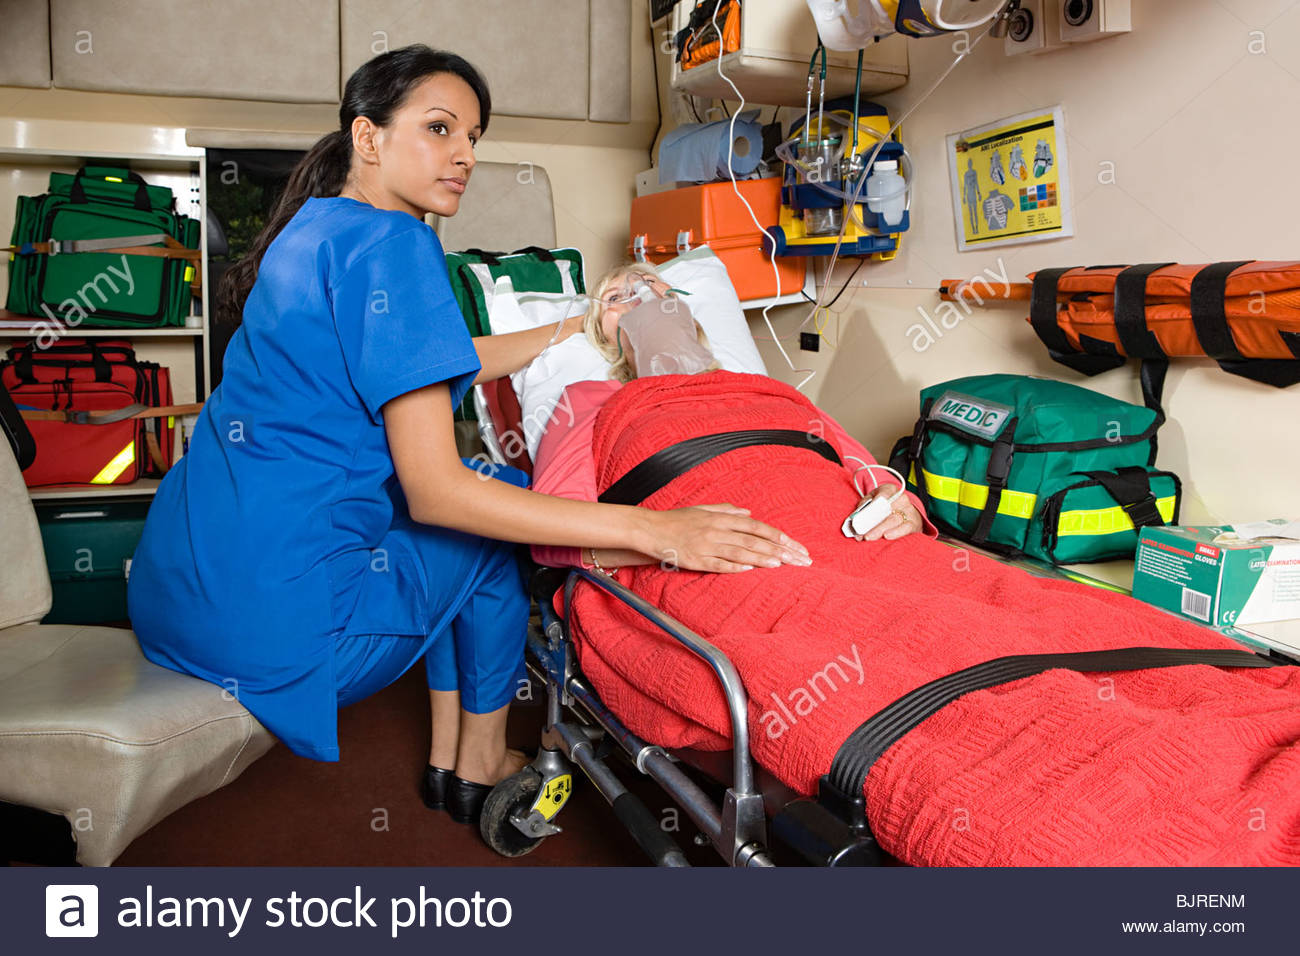 Nurse and patient in ambulance - Stock Image